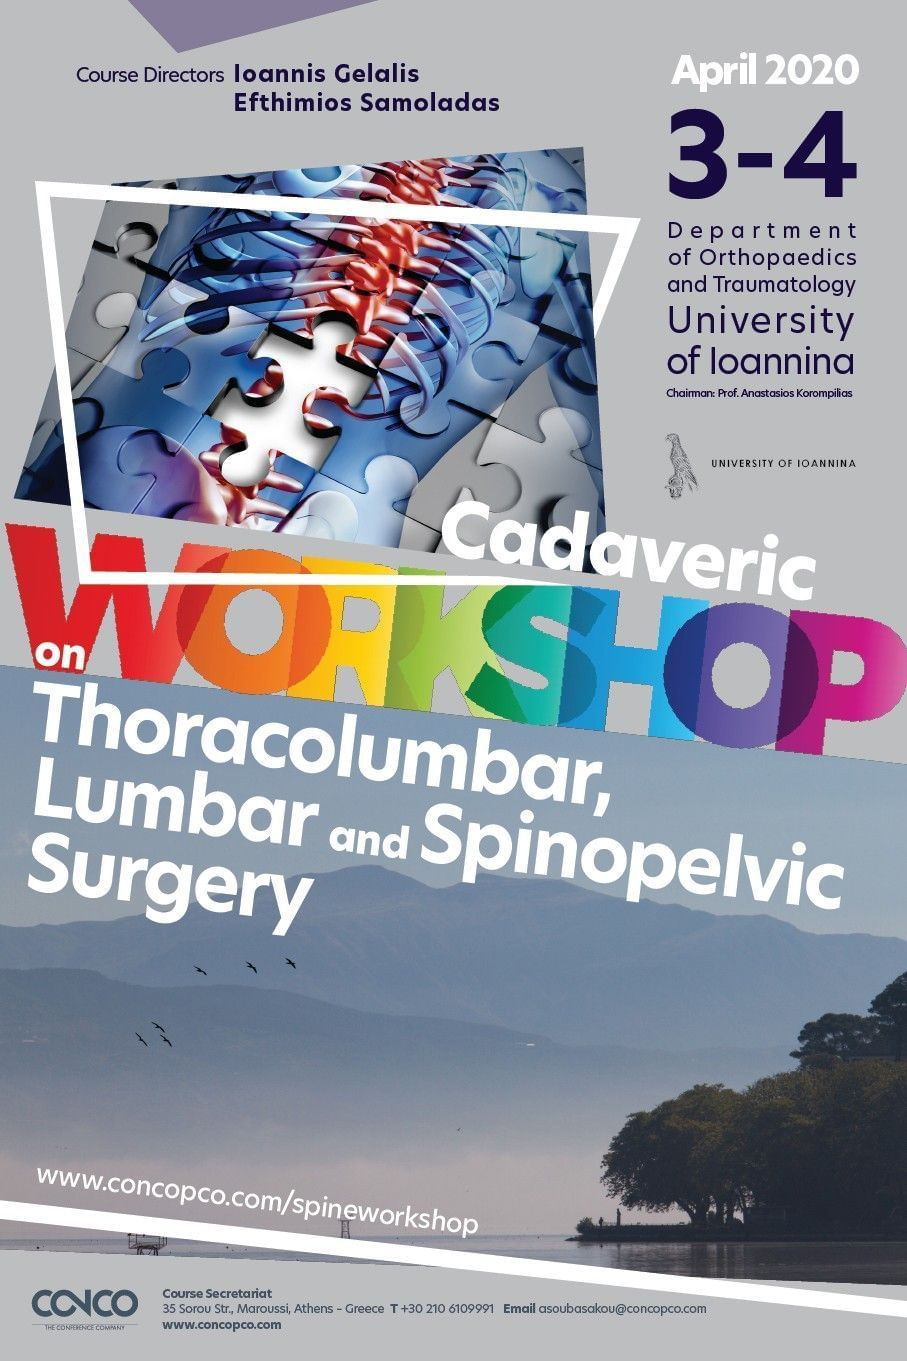 CADAVERIC WORKSHOP ON THORACOLUMBAR, LUMBAR AND SPINOPELVIC SURGERY